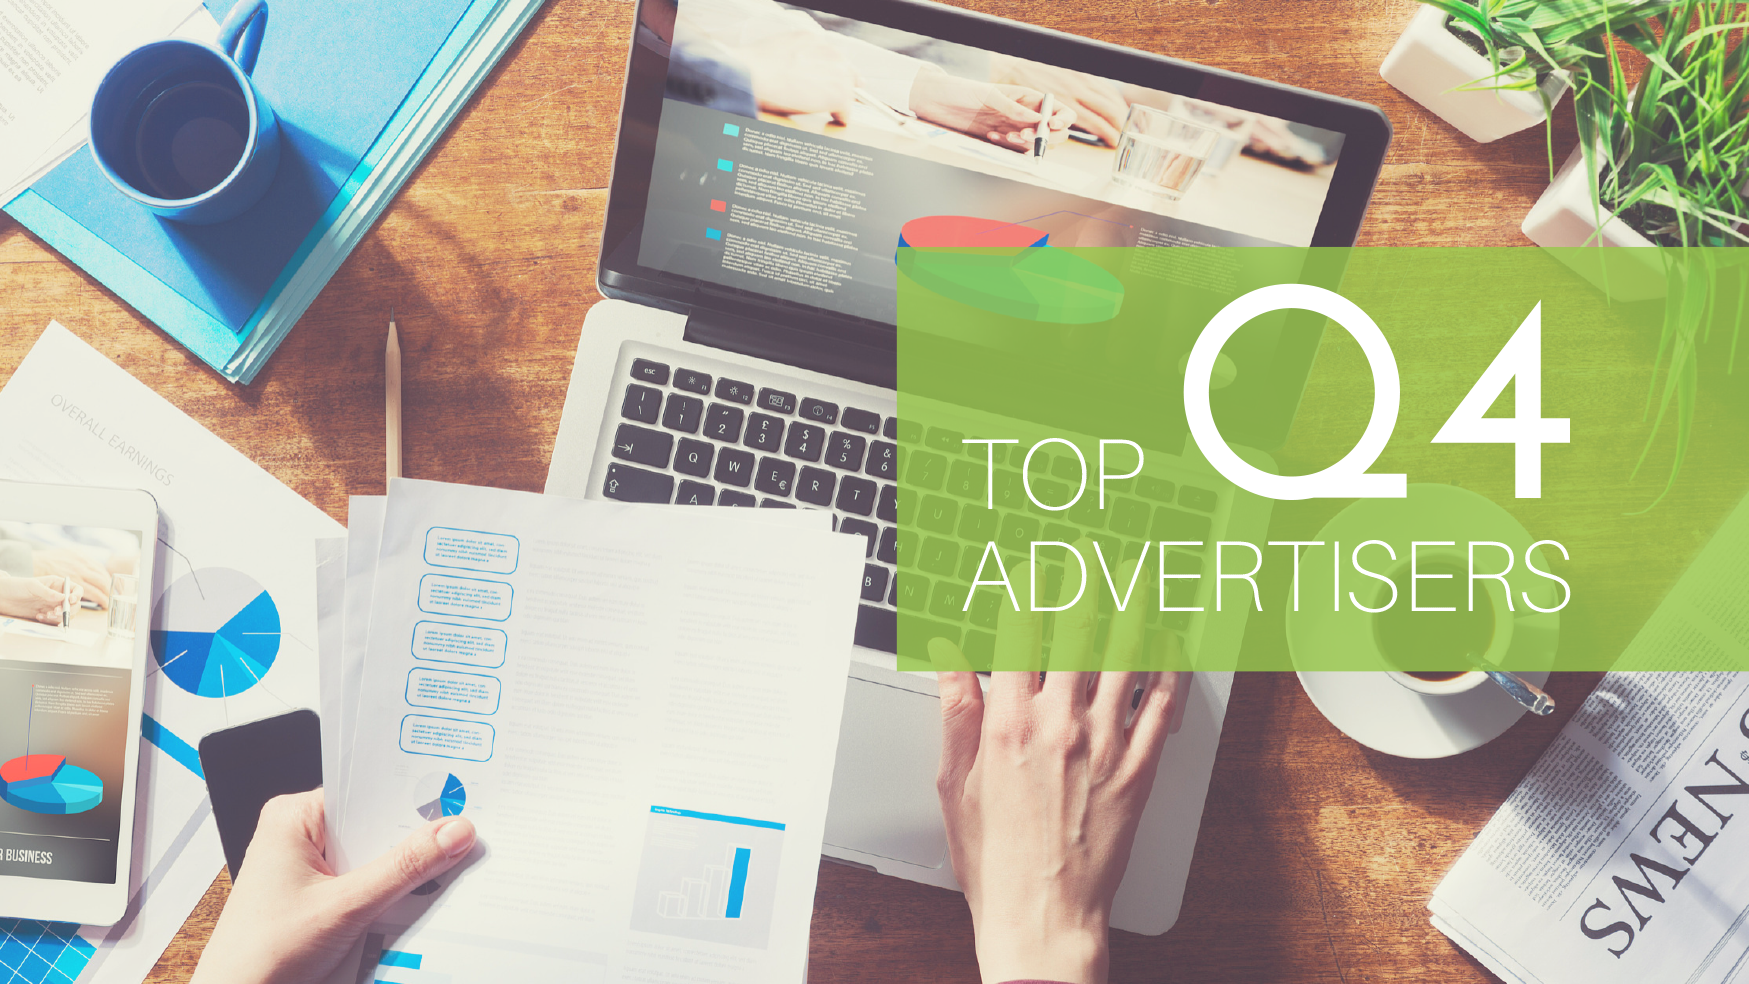 Q4-top-advertisers-blog-header